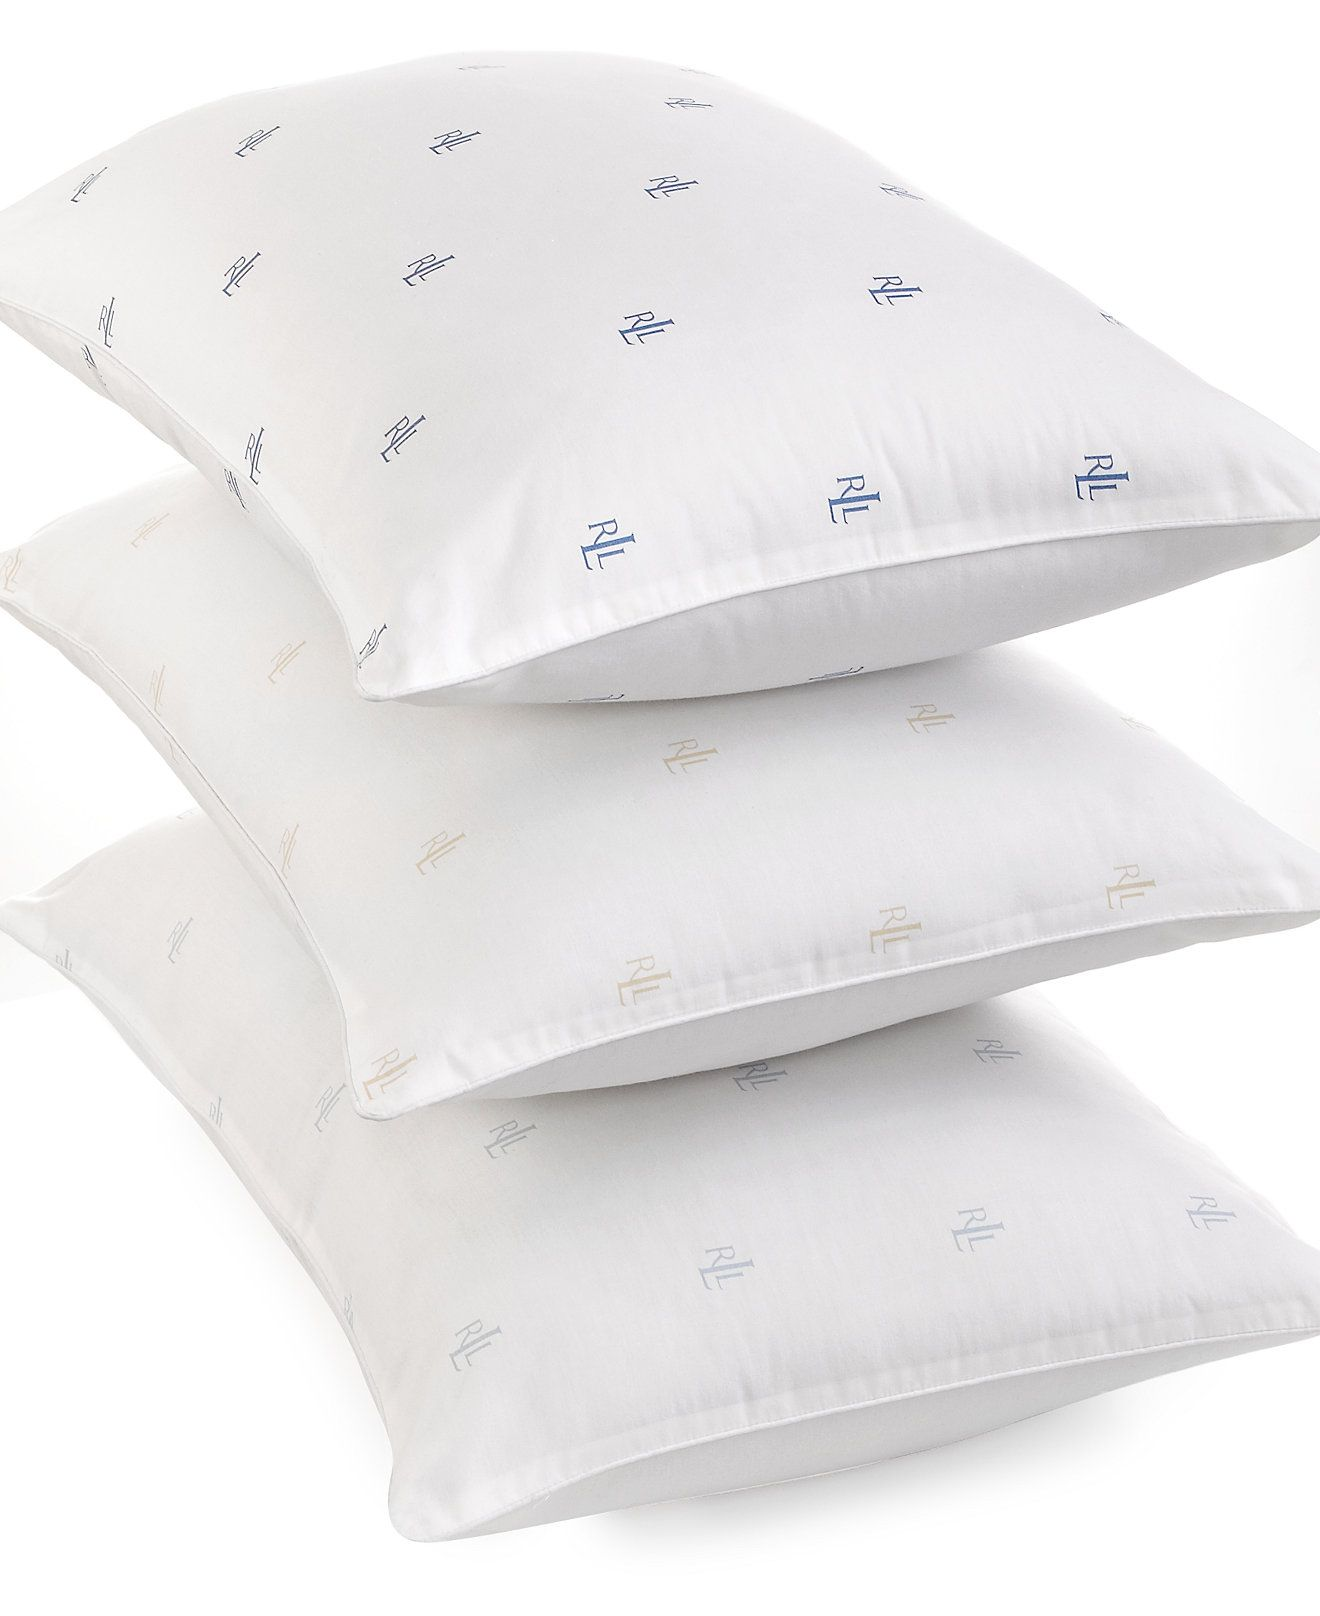 pillows com usafurnishingsdepot supply store side u standard firm white web extra pillow us supreme density sleeper down s